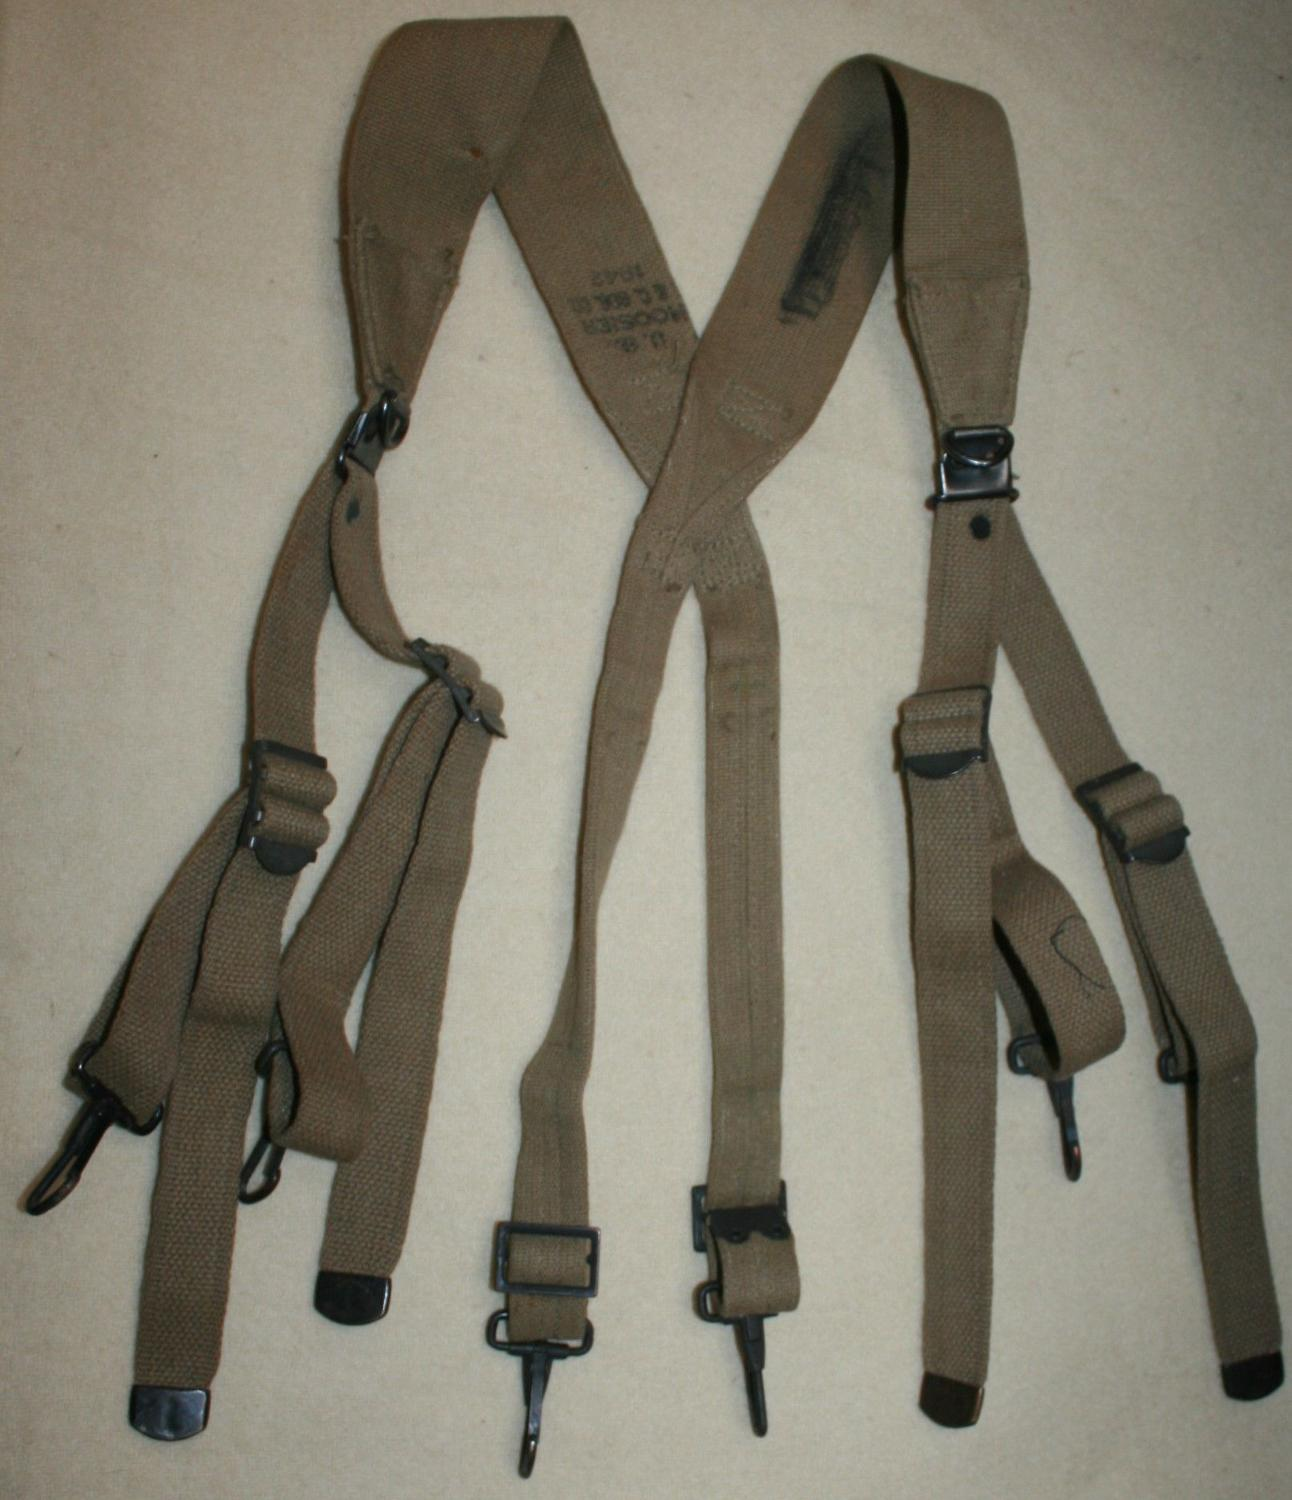 A GOOD USED PAIR OF M1928 SUSPENDERS 1942 DATED